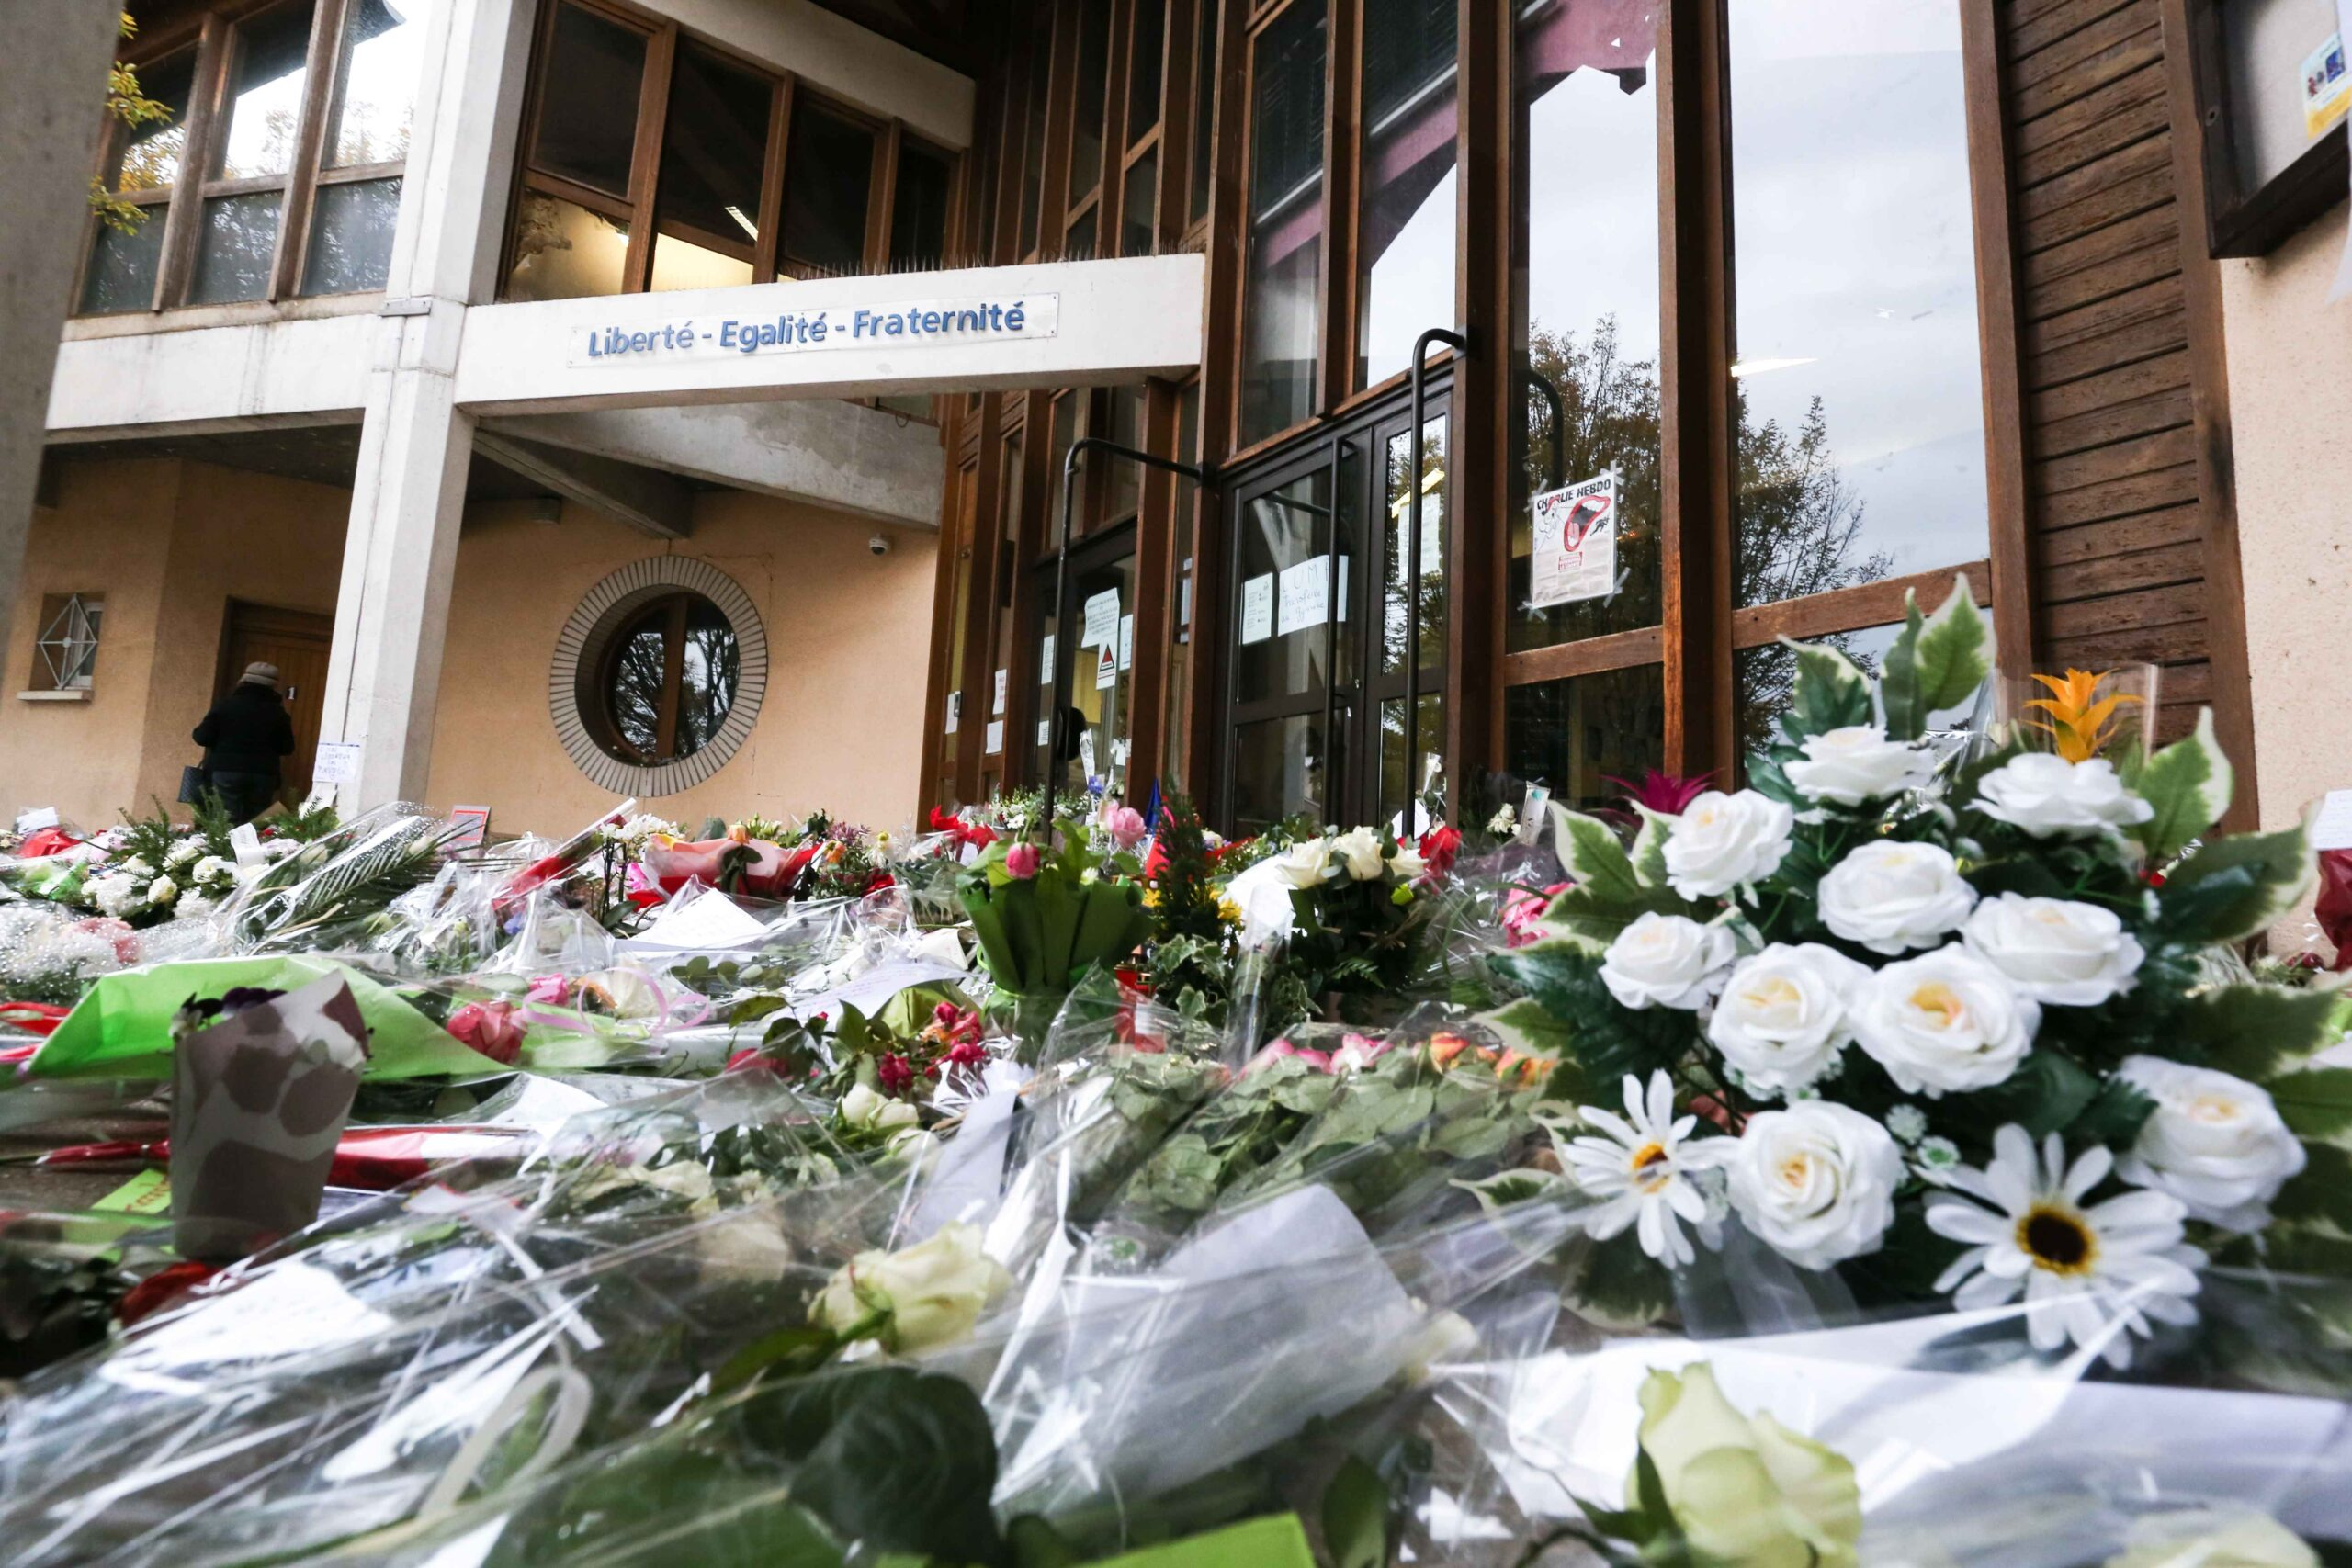 Flowers are placed outside the Bois d'Aulne secondary school in homage to slain history teacher Samuel Paty, who was beheaded by an attacker for showing pupils cartoons of the Prophet Mohammed in his civics class, on October 19, 2020, in Conflans-Sainte-Ho